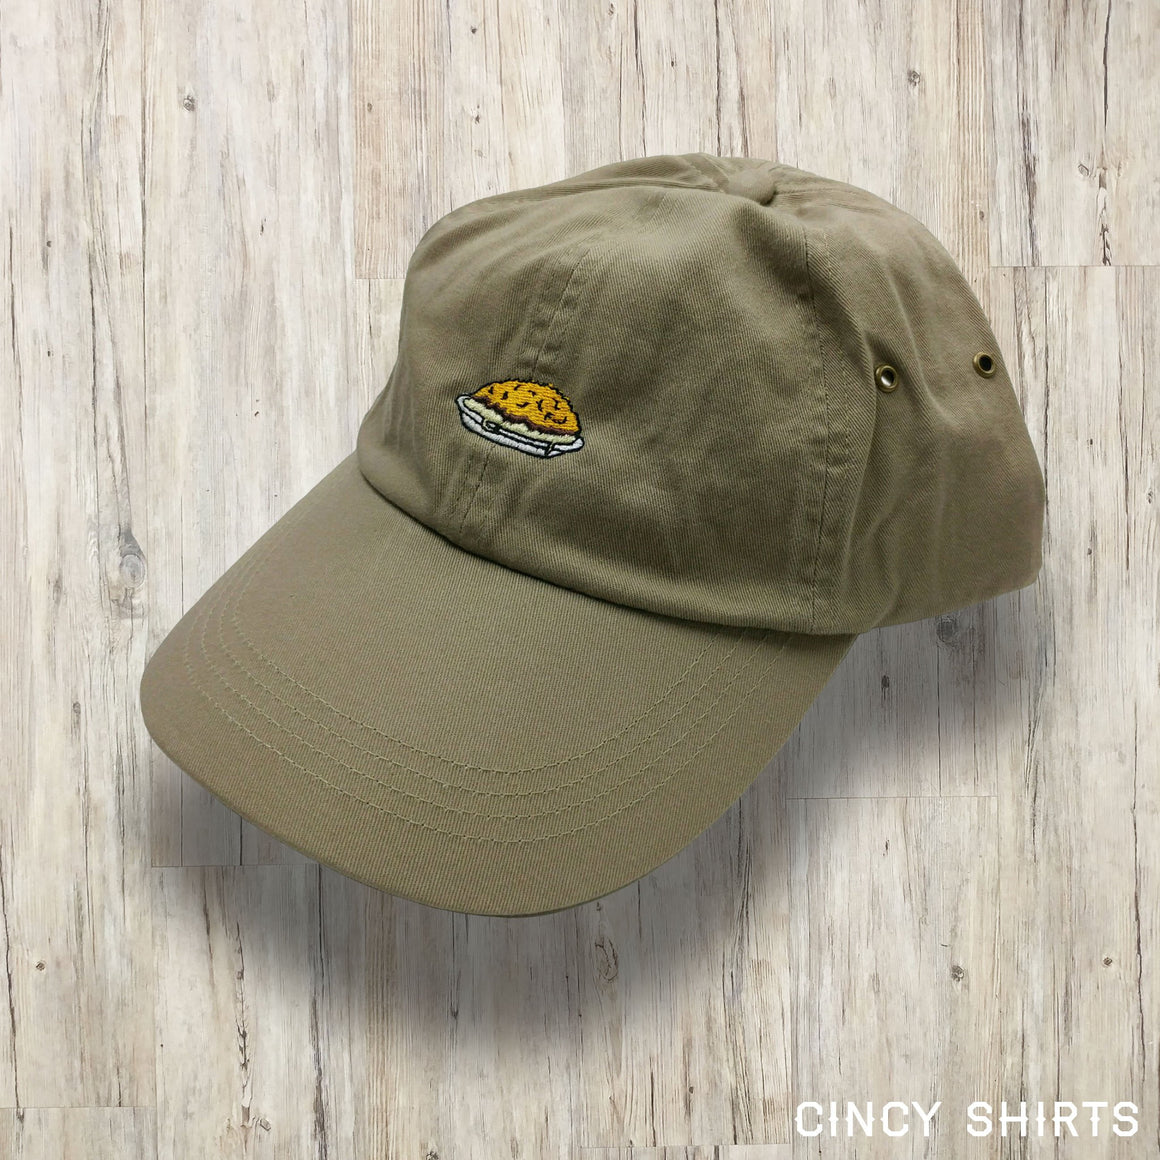 Cincy Chili Dad Hat - Tan